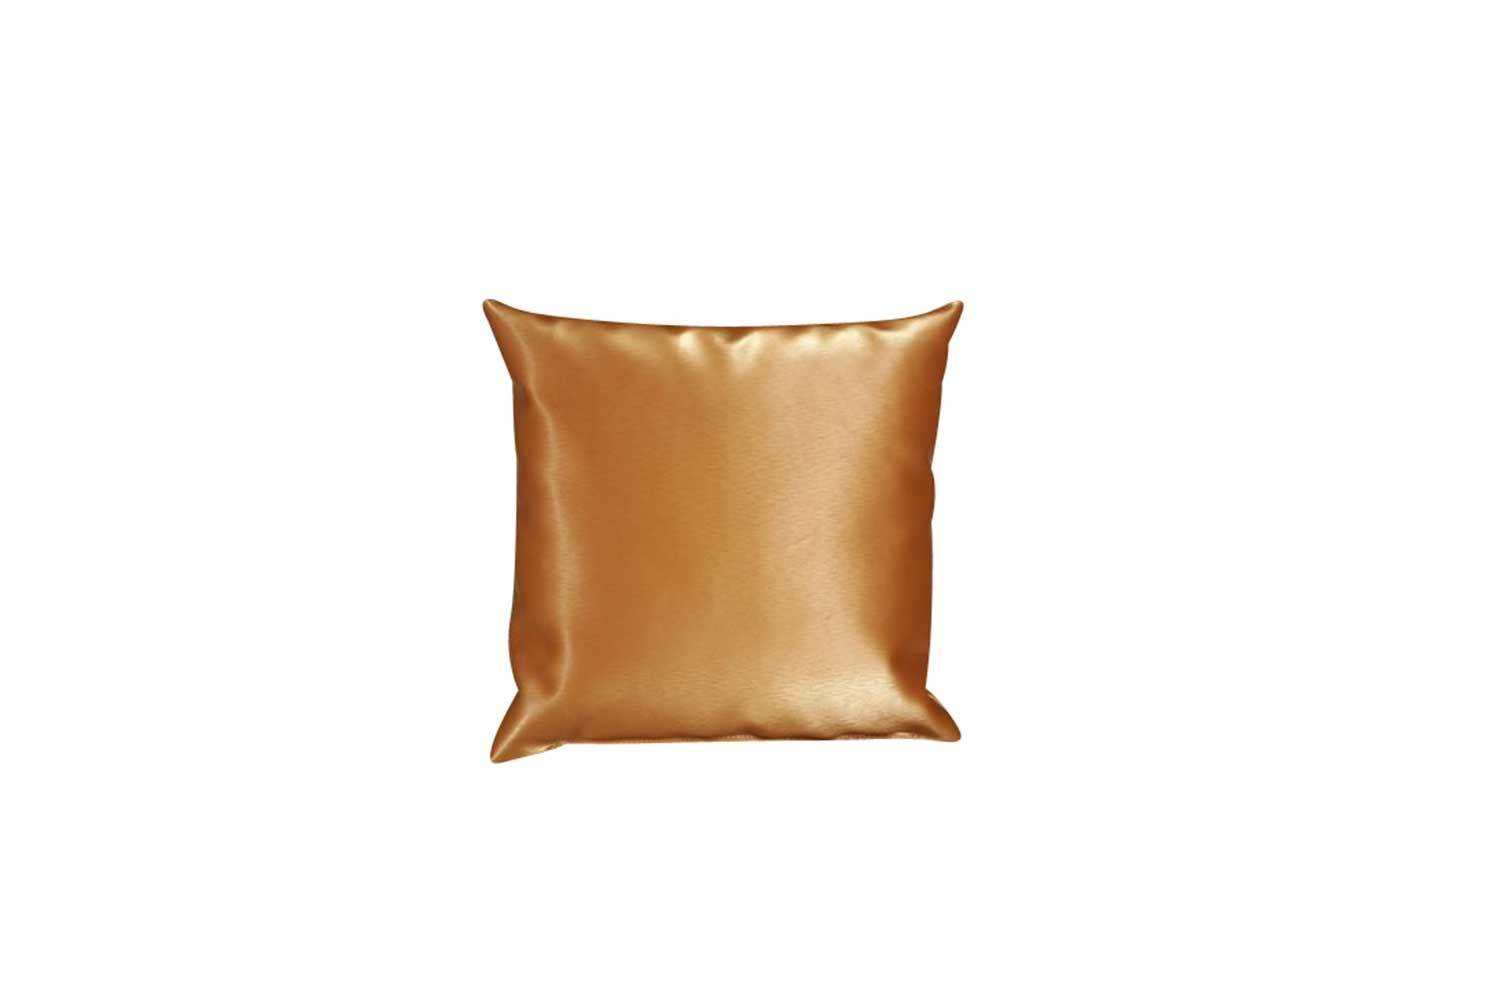 Pillow-Brushed Gold 6420